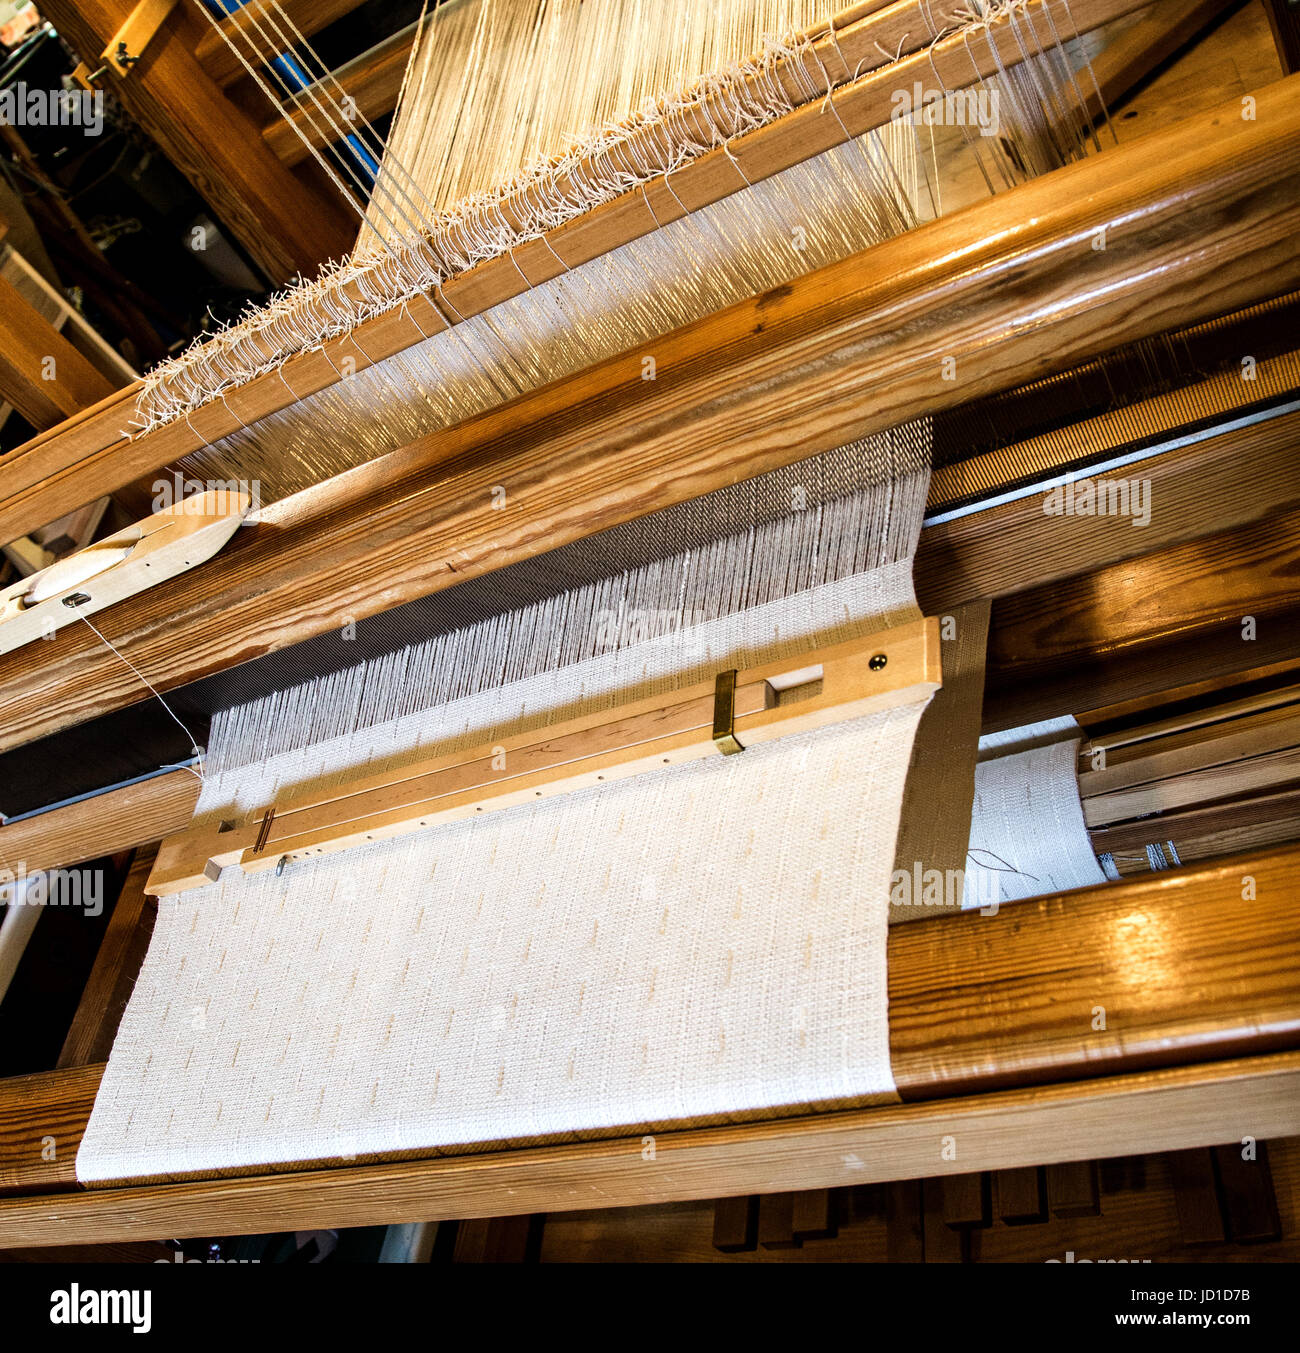 weaving on a loom - Stock Image